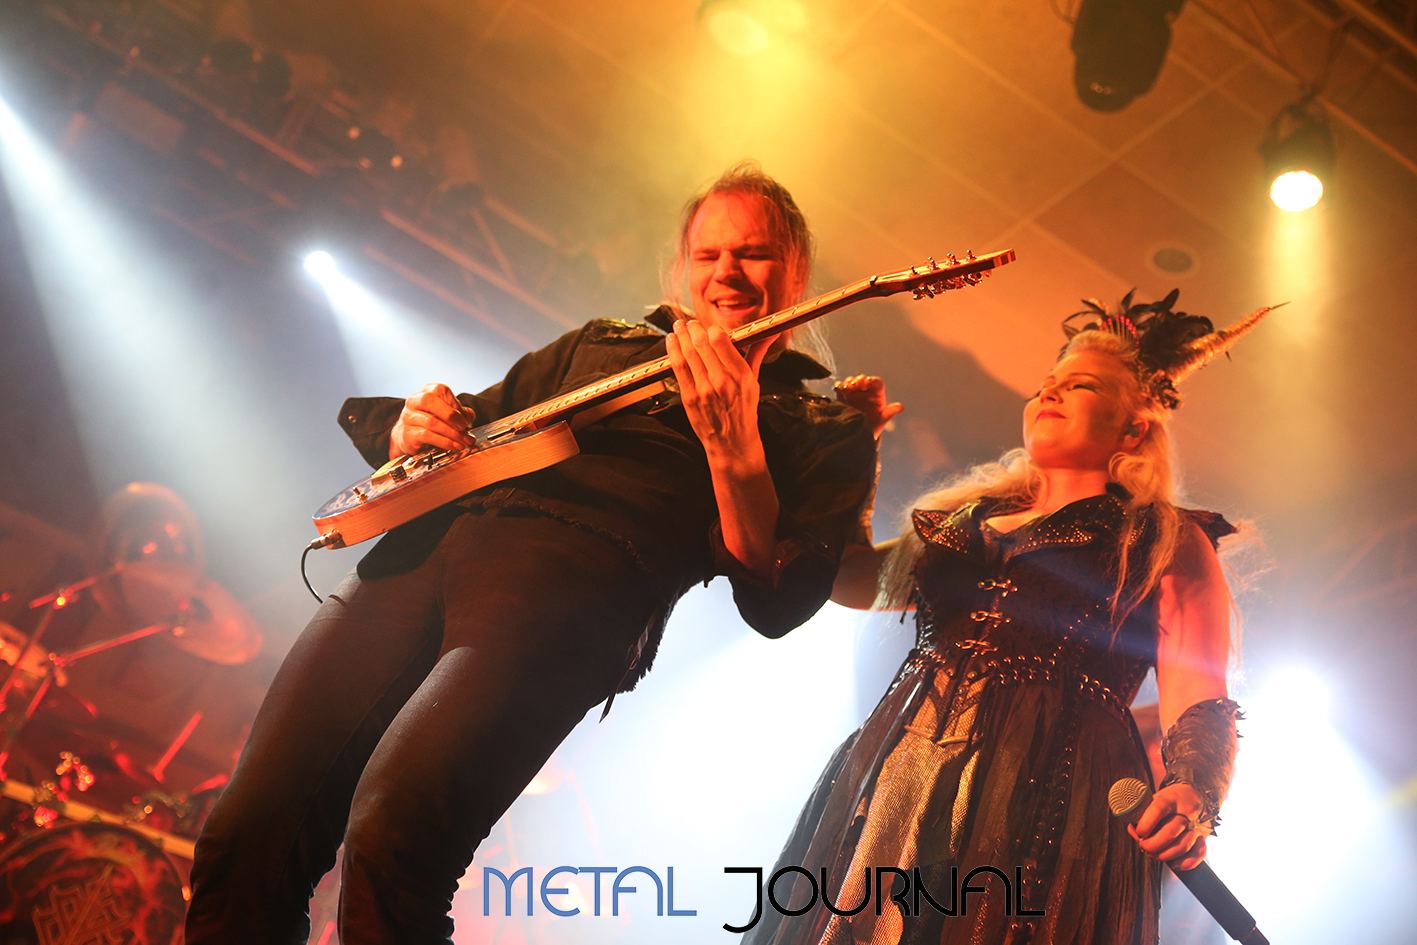 battle beast metal journal bilbao 2019 pic 6